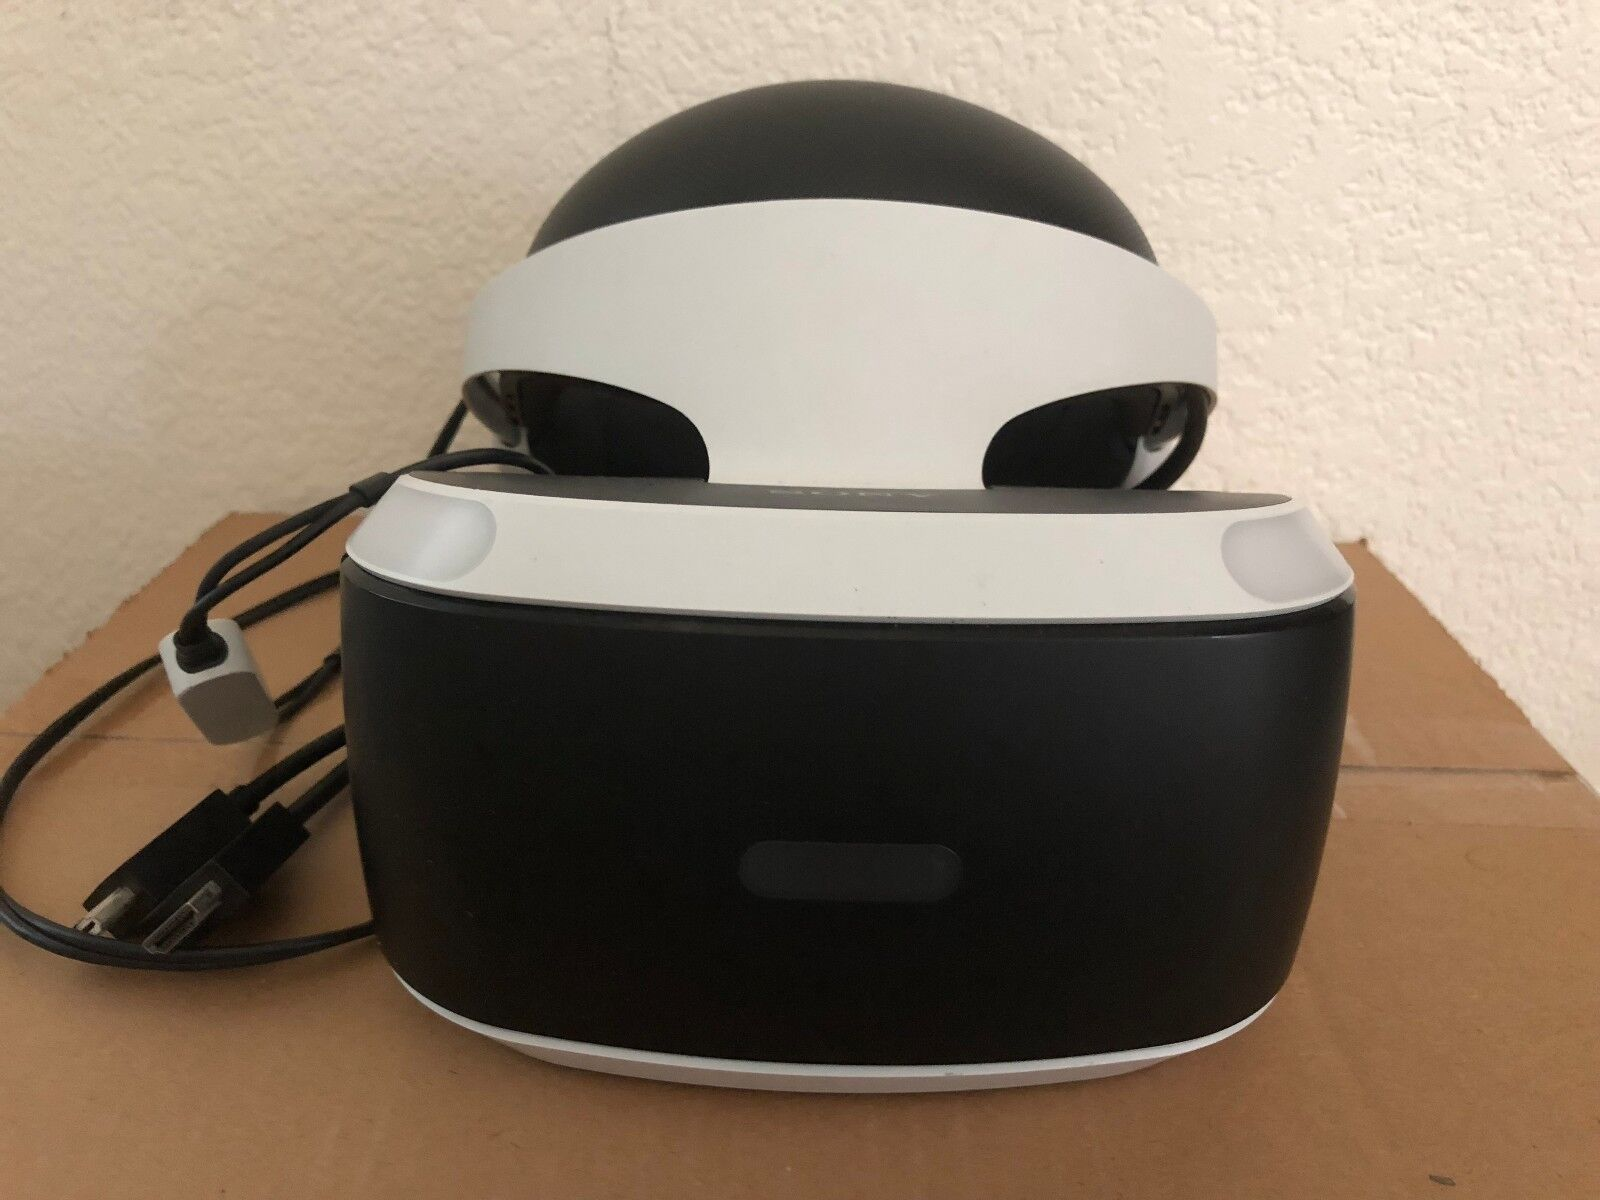 Sony Playstation VR Headset PS VR PS4 Headset Only